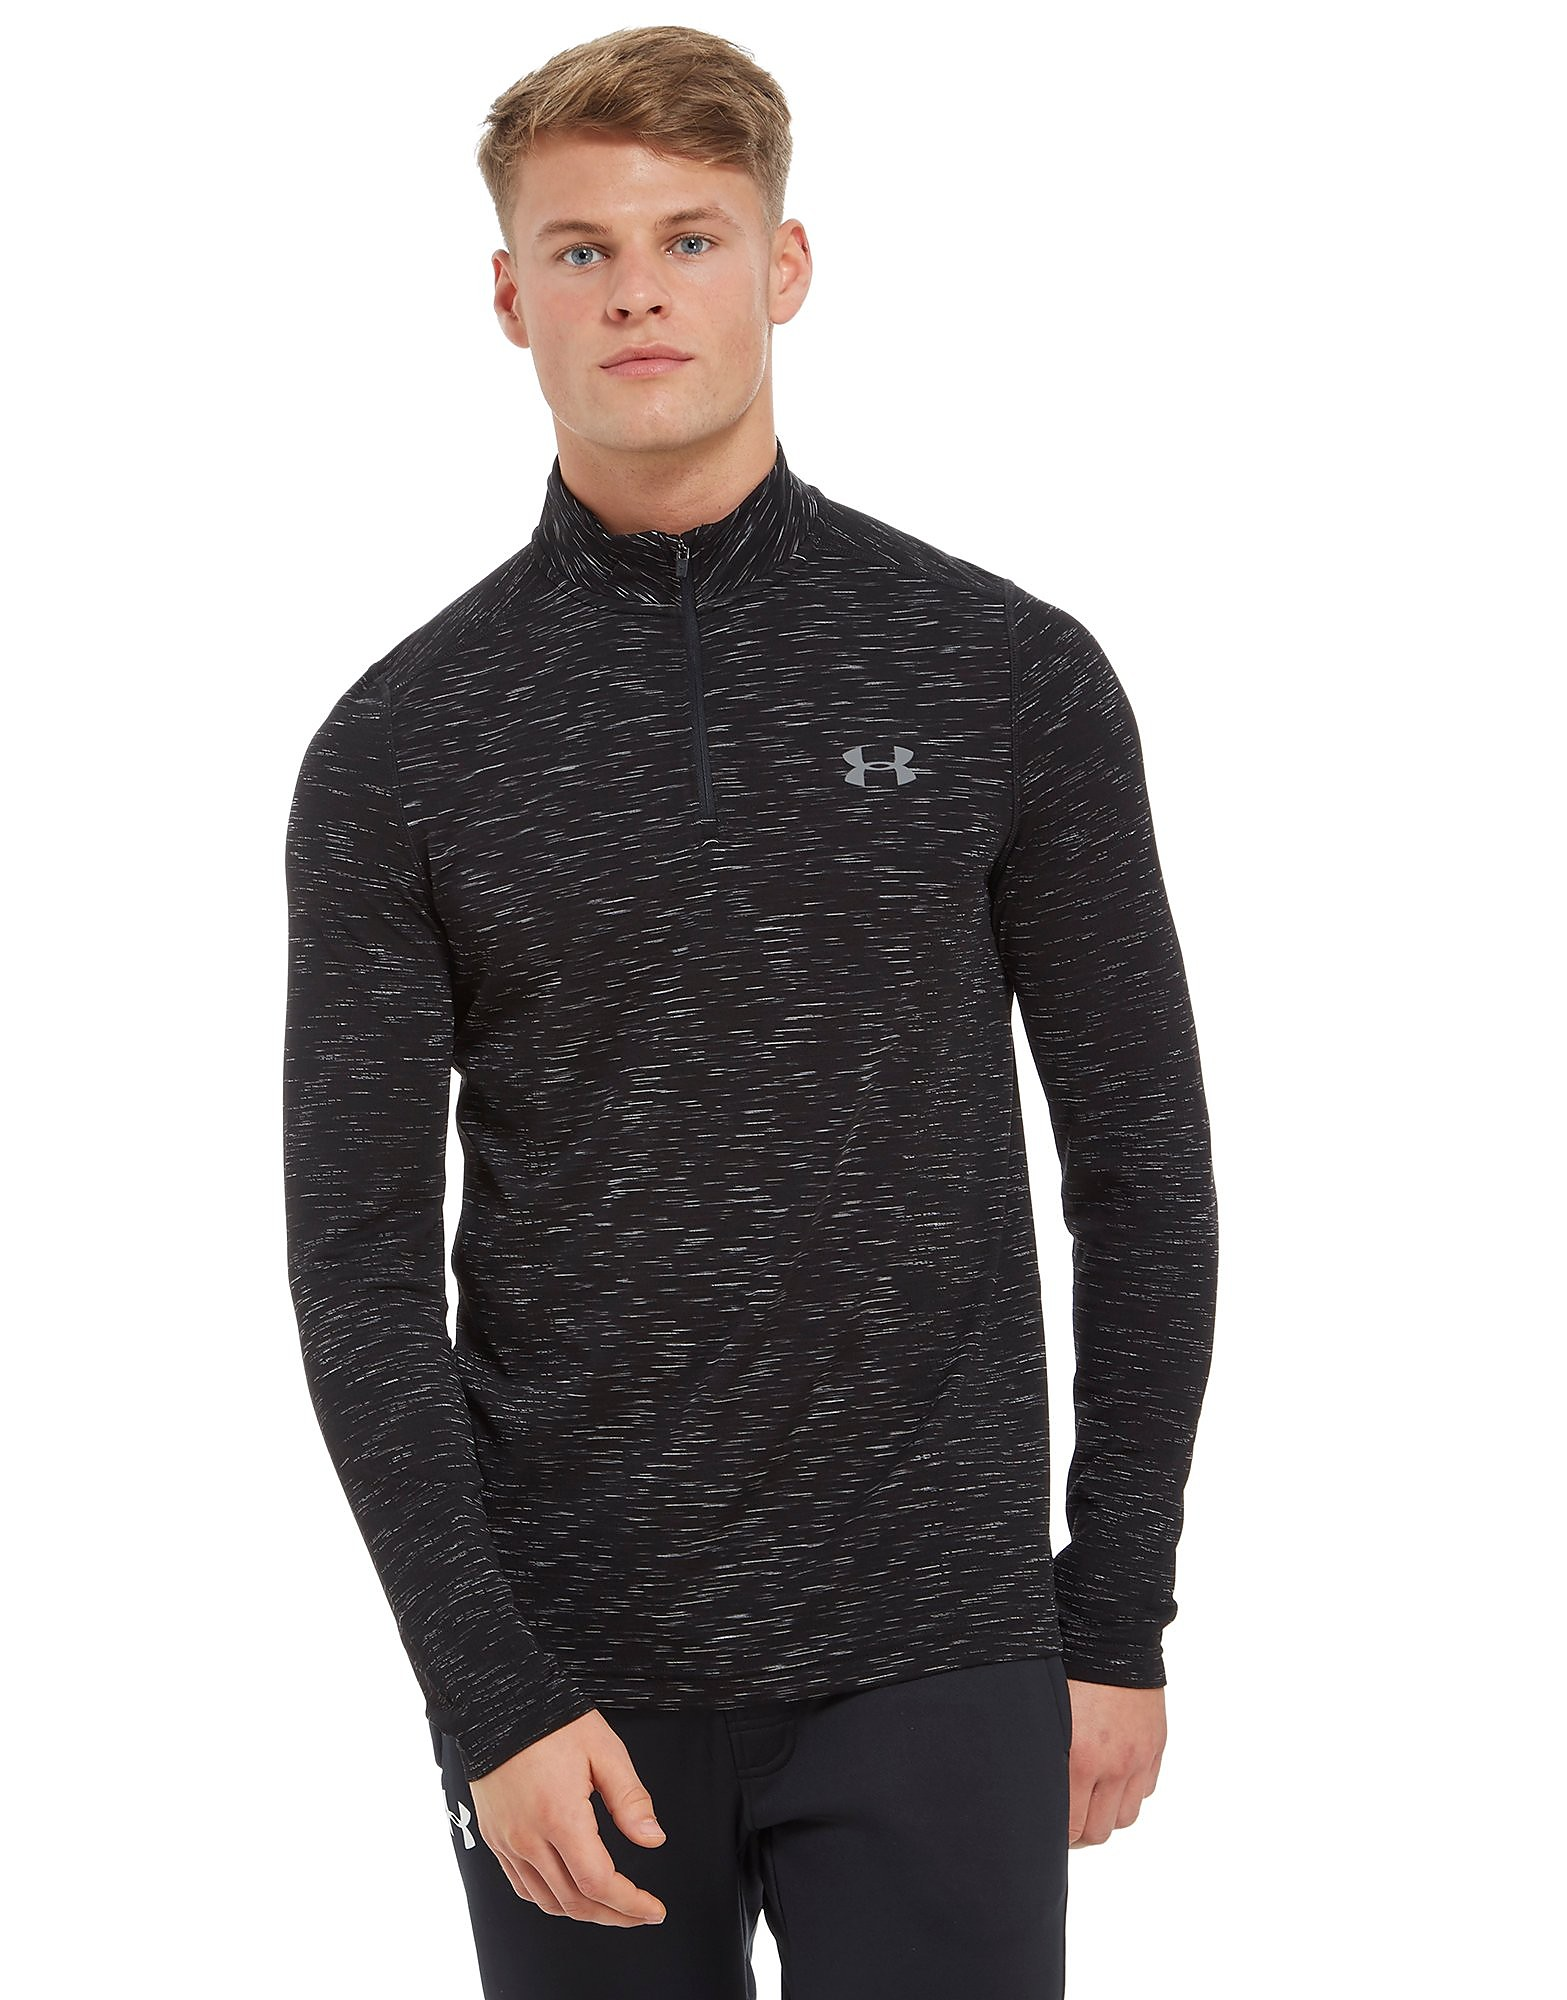 Under Armour Threadborne 1/4 Zip Top